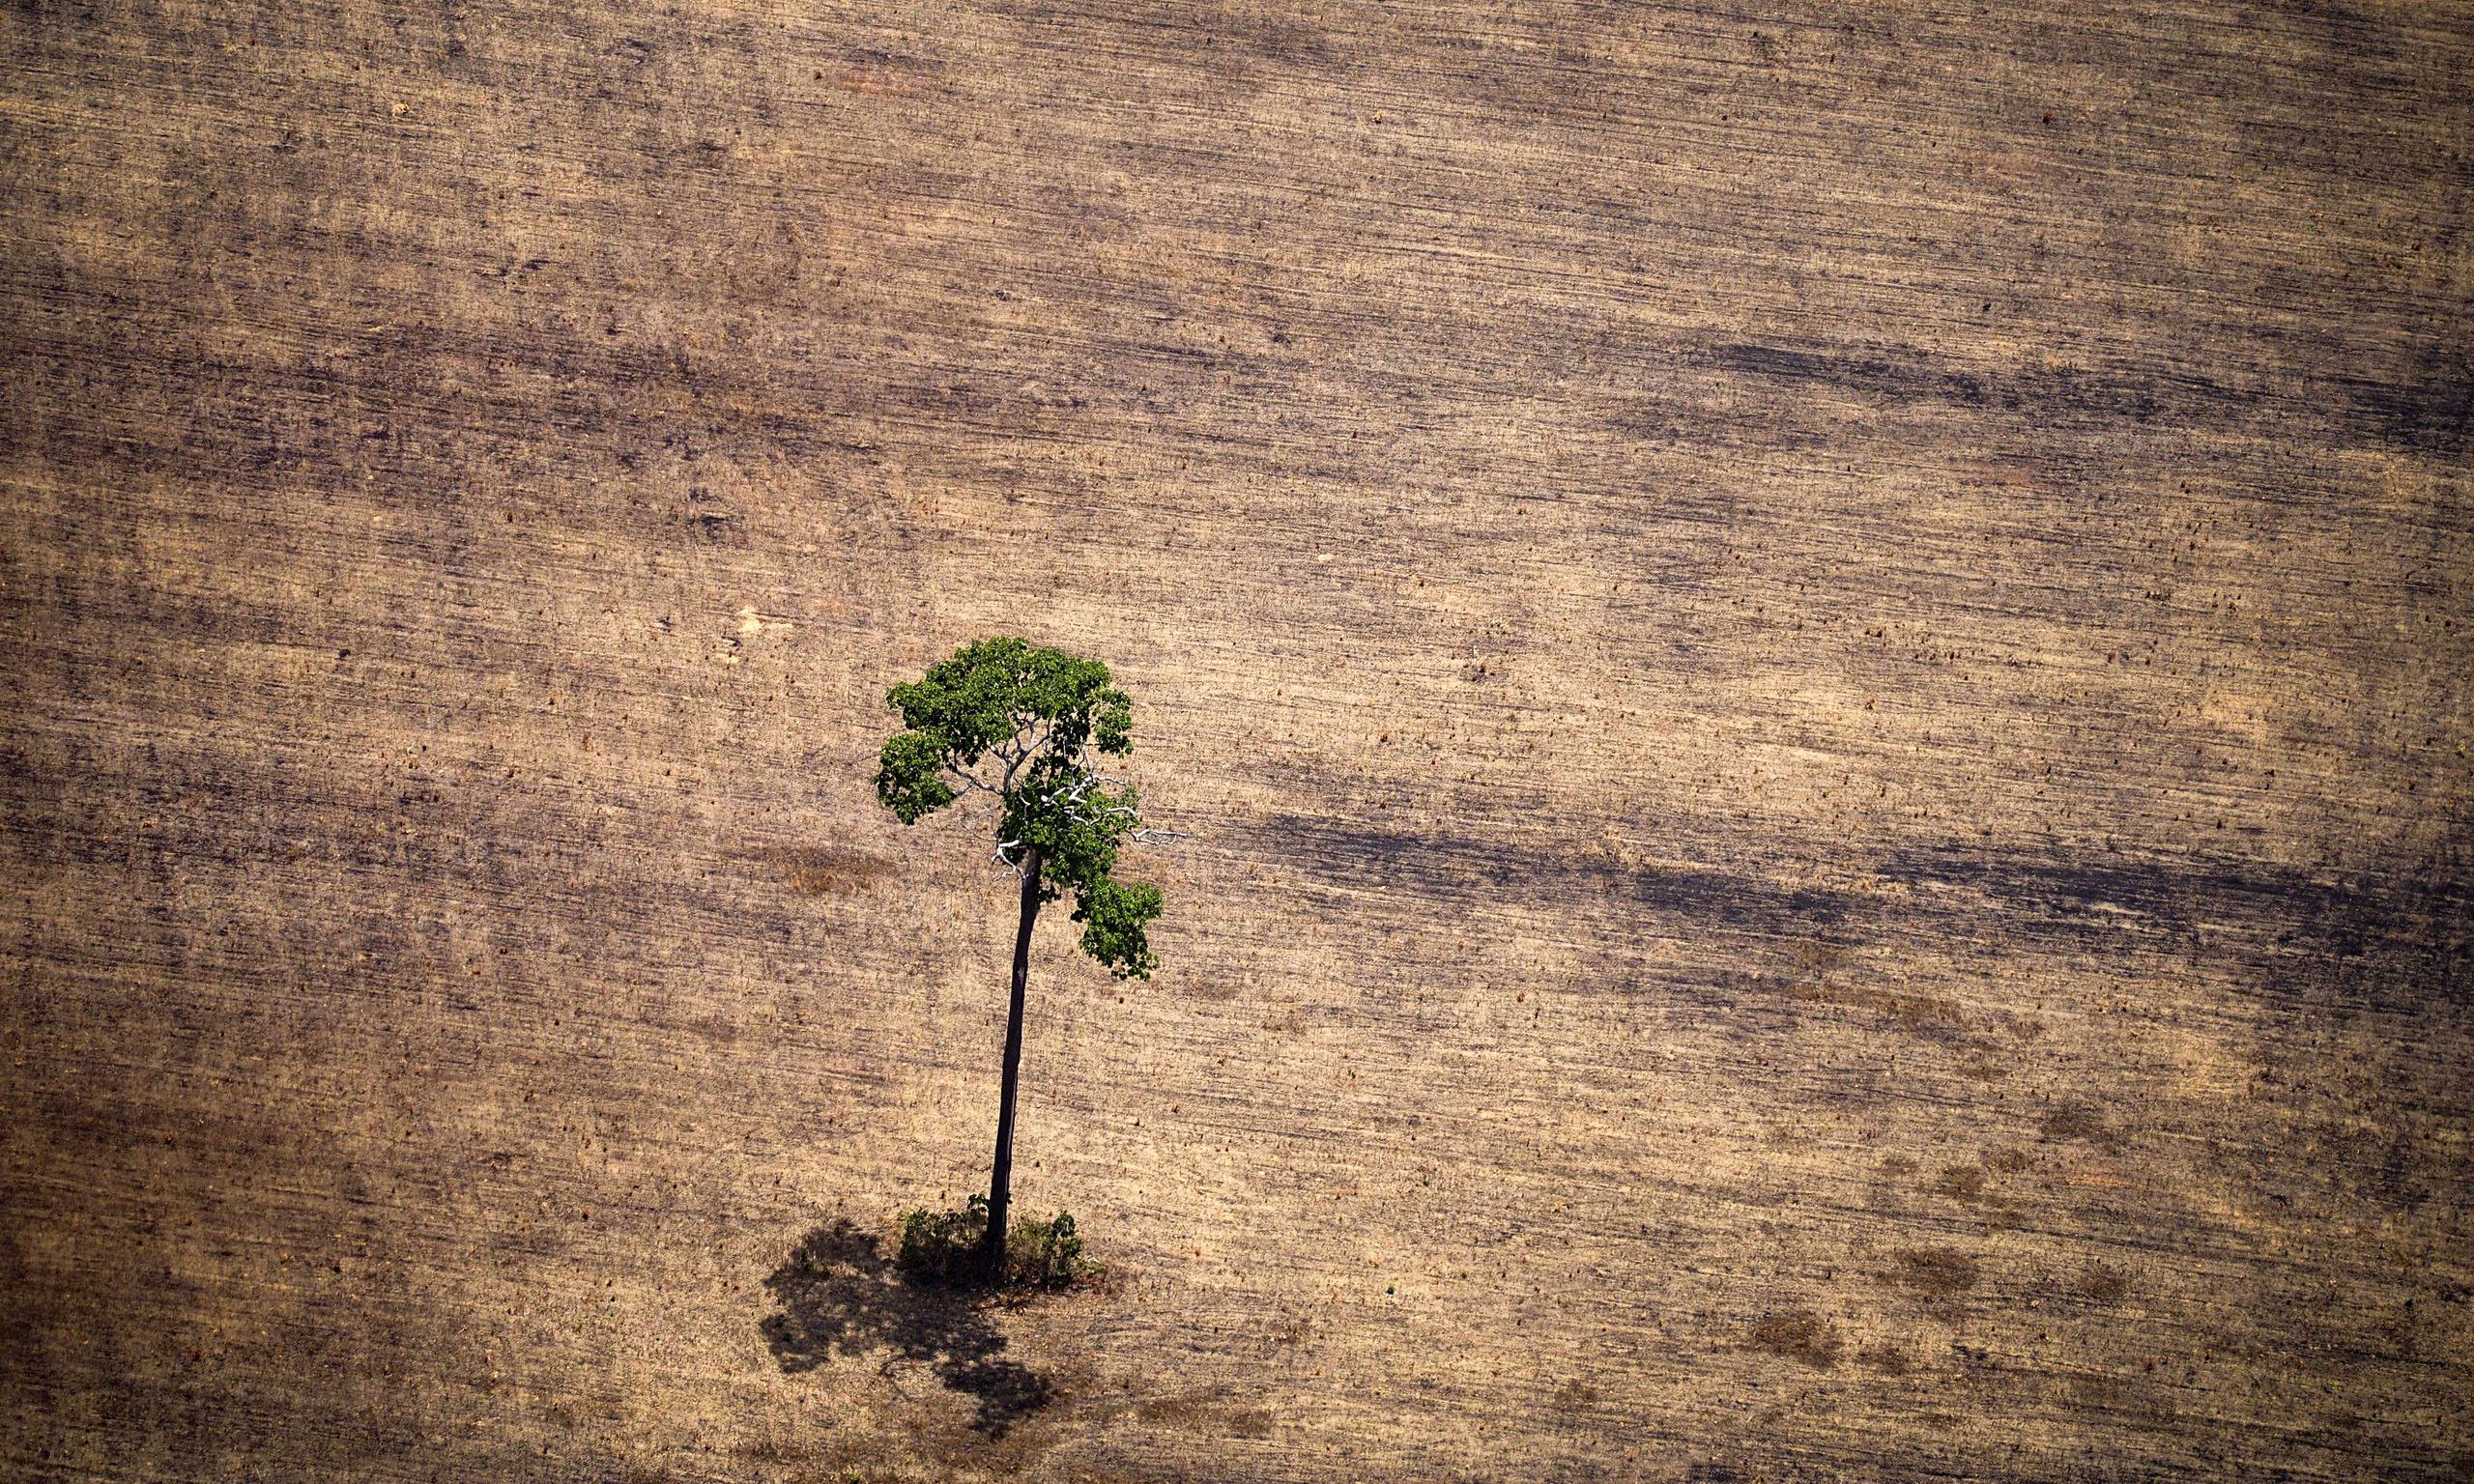 an analysis of the problem of deforestation Deforestation solutions deforestation is a persistent problem with a multitude of causes logging companies often use slash and burn techniques, without any concern for existing habitats ranchers see the land simply as cheap fertile land for grazing.